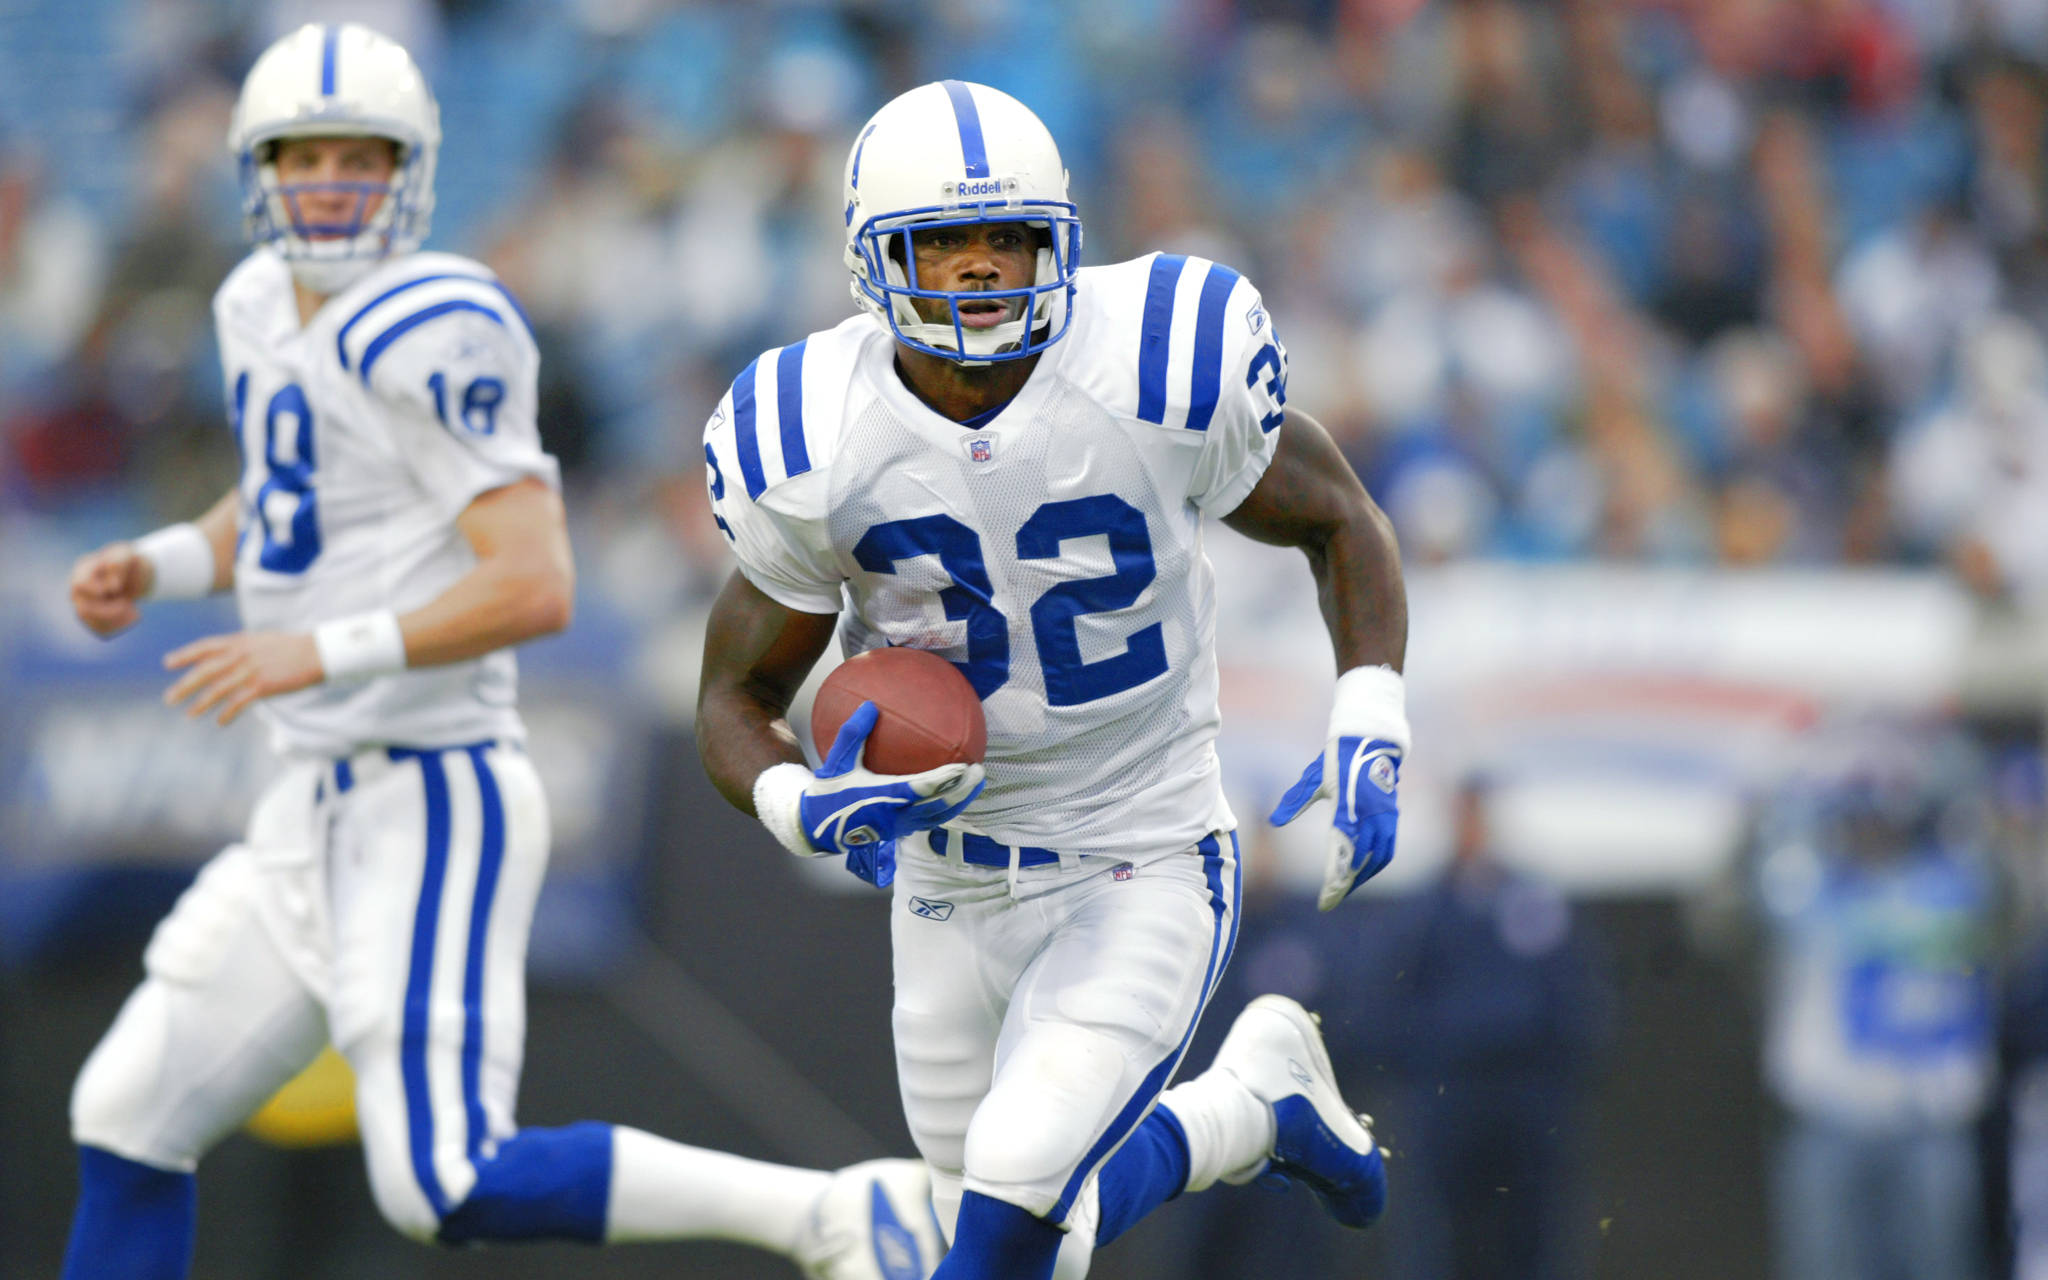 Edgerrin James Peyton Manning39s Top Targets Edgerrin James Peyton